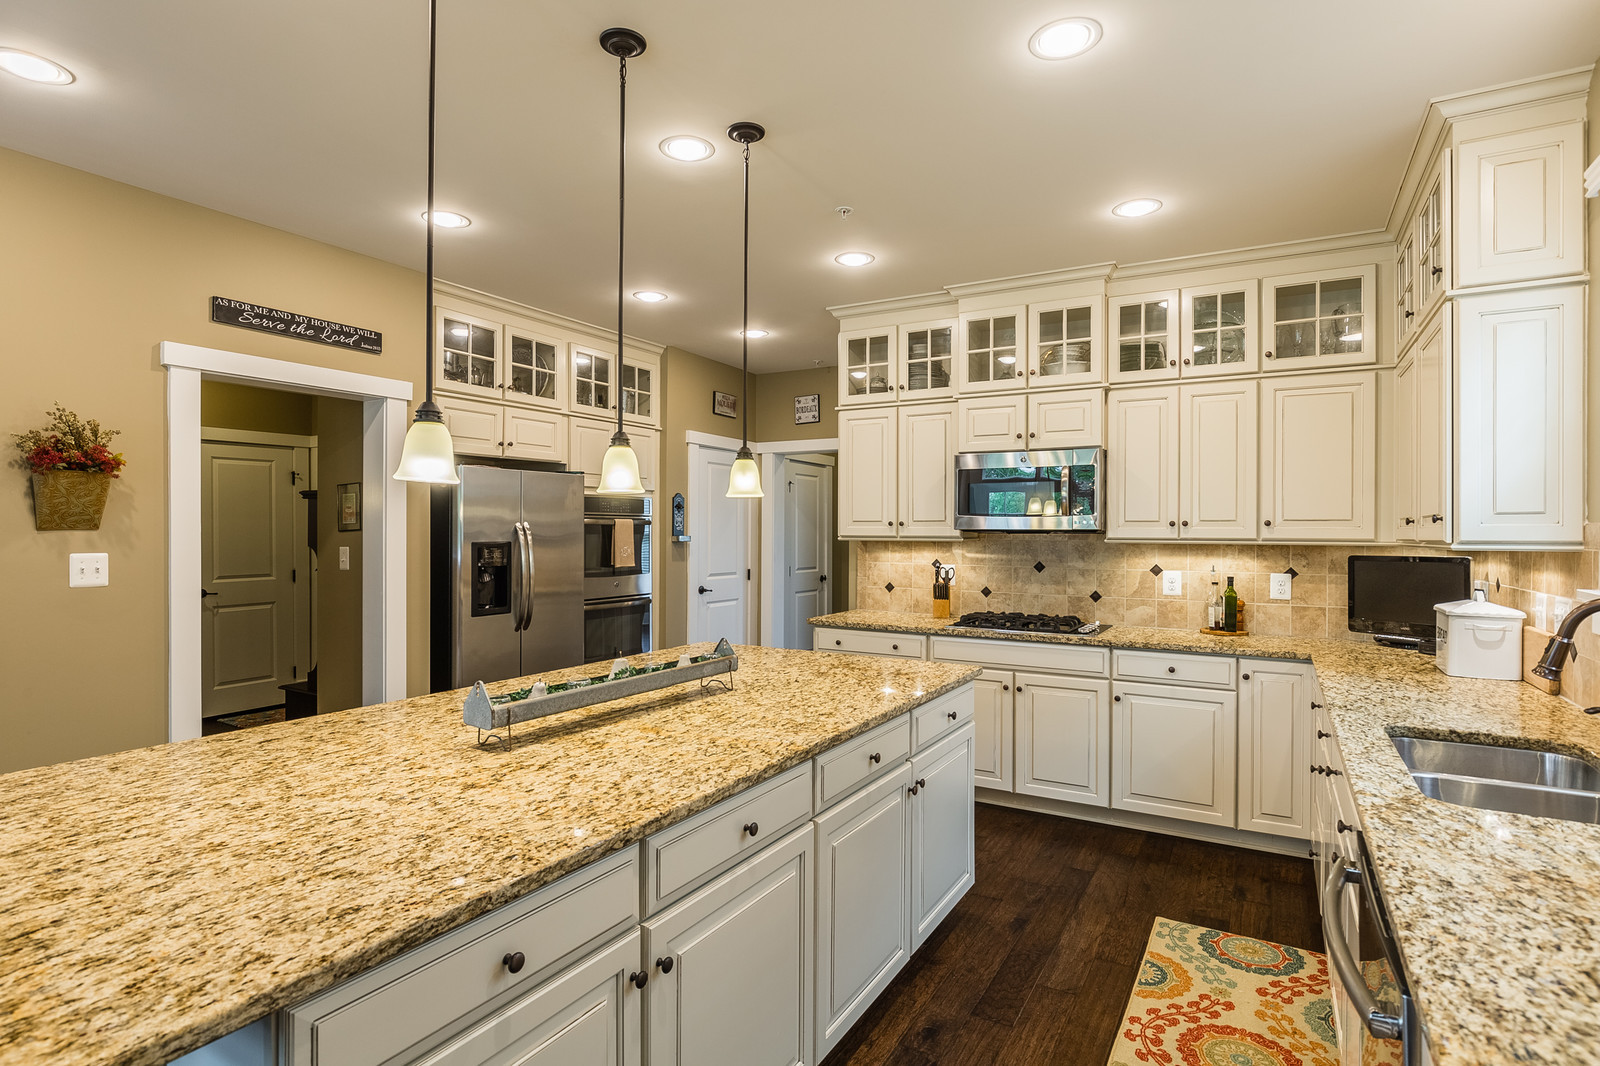 Potomac Shores Homes offer amazing kitchens